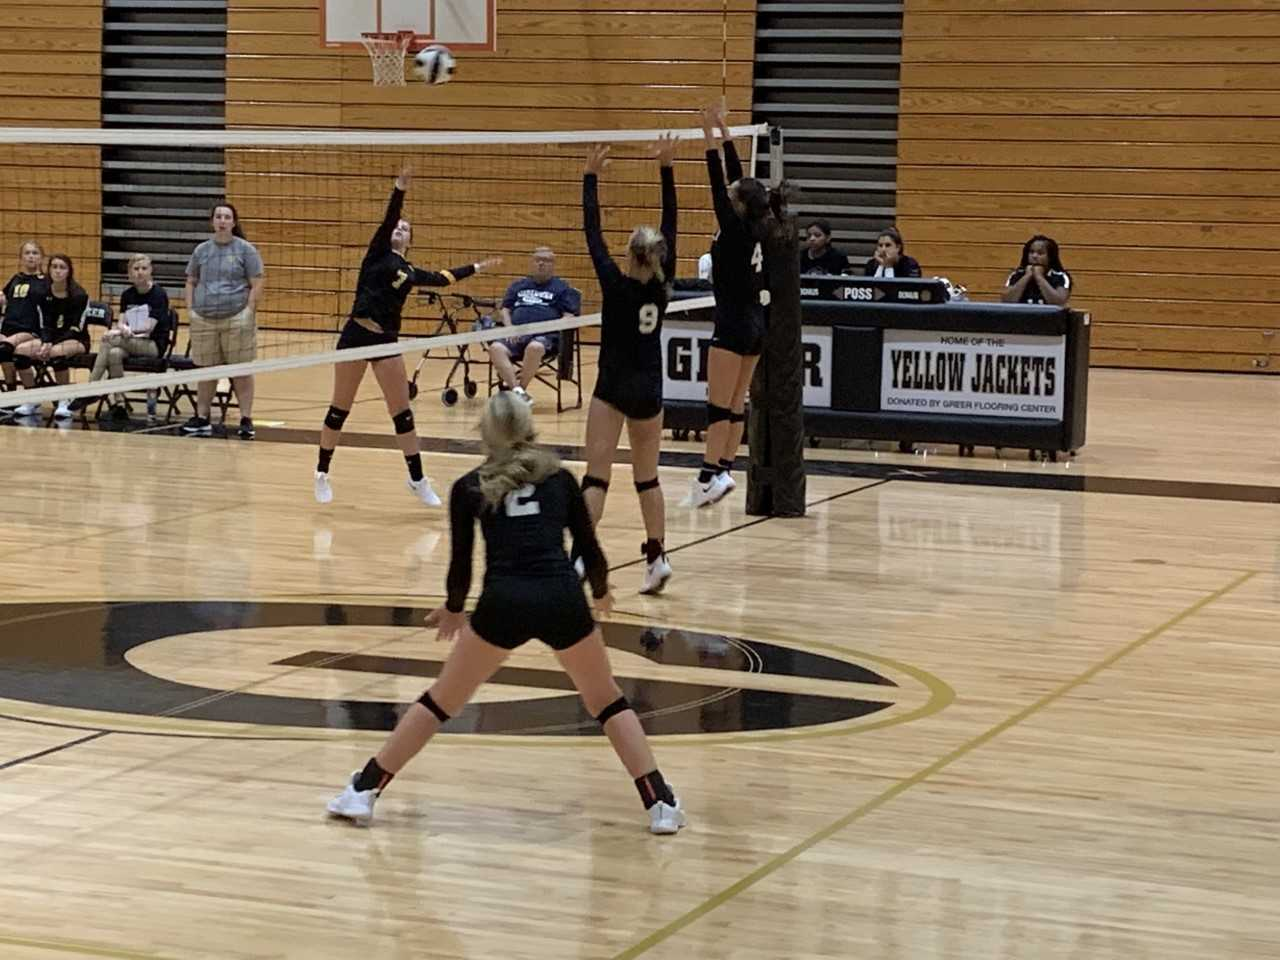 Greer wins Volleyball game against Union